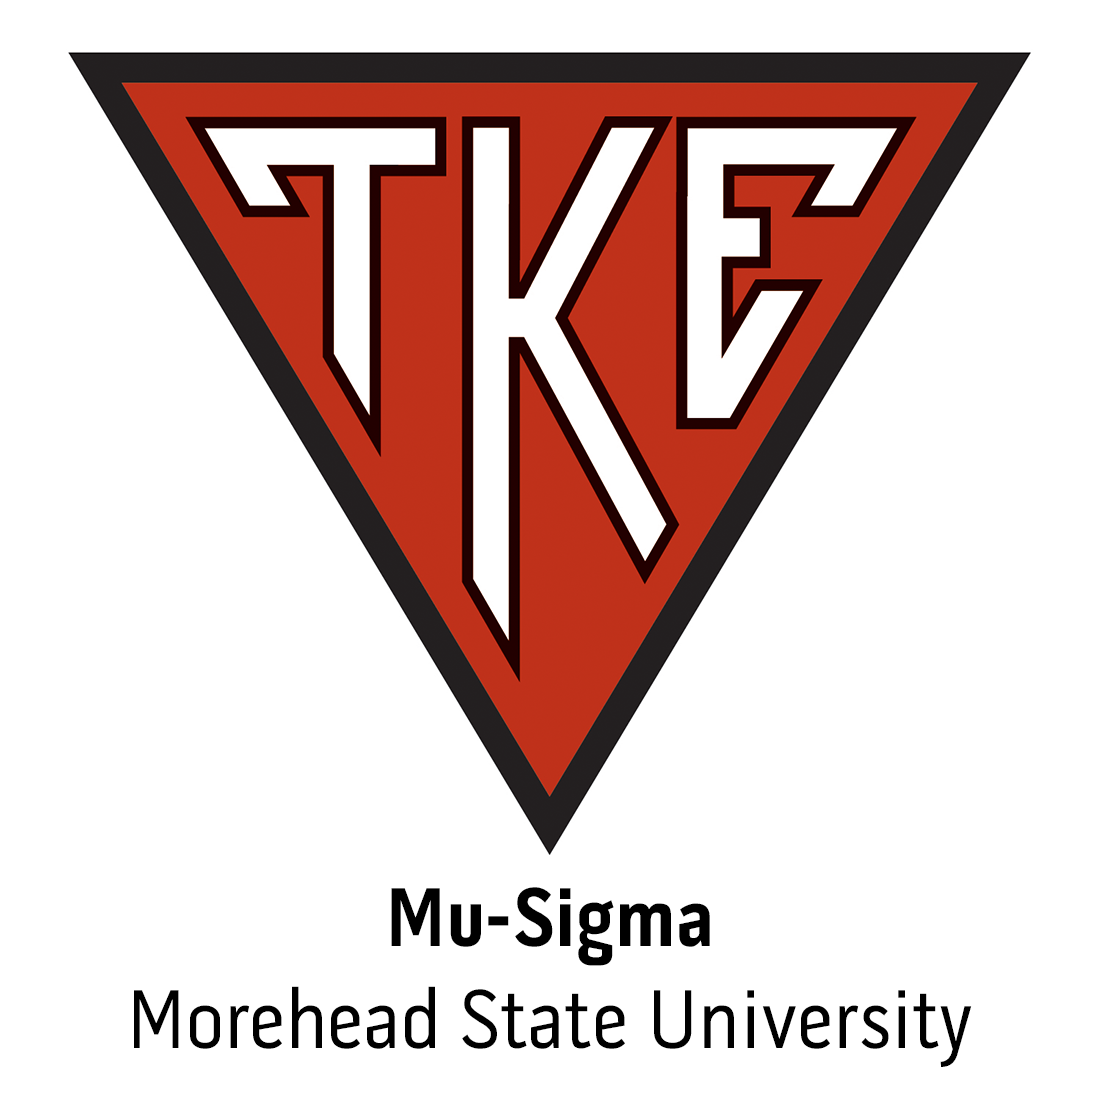 Mu-Sigma Colony at Morehead State University